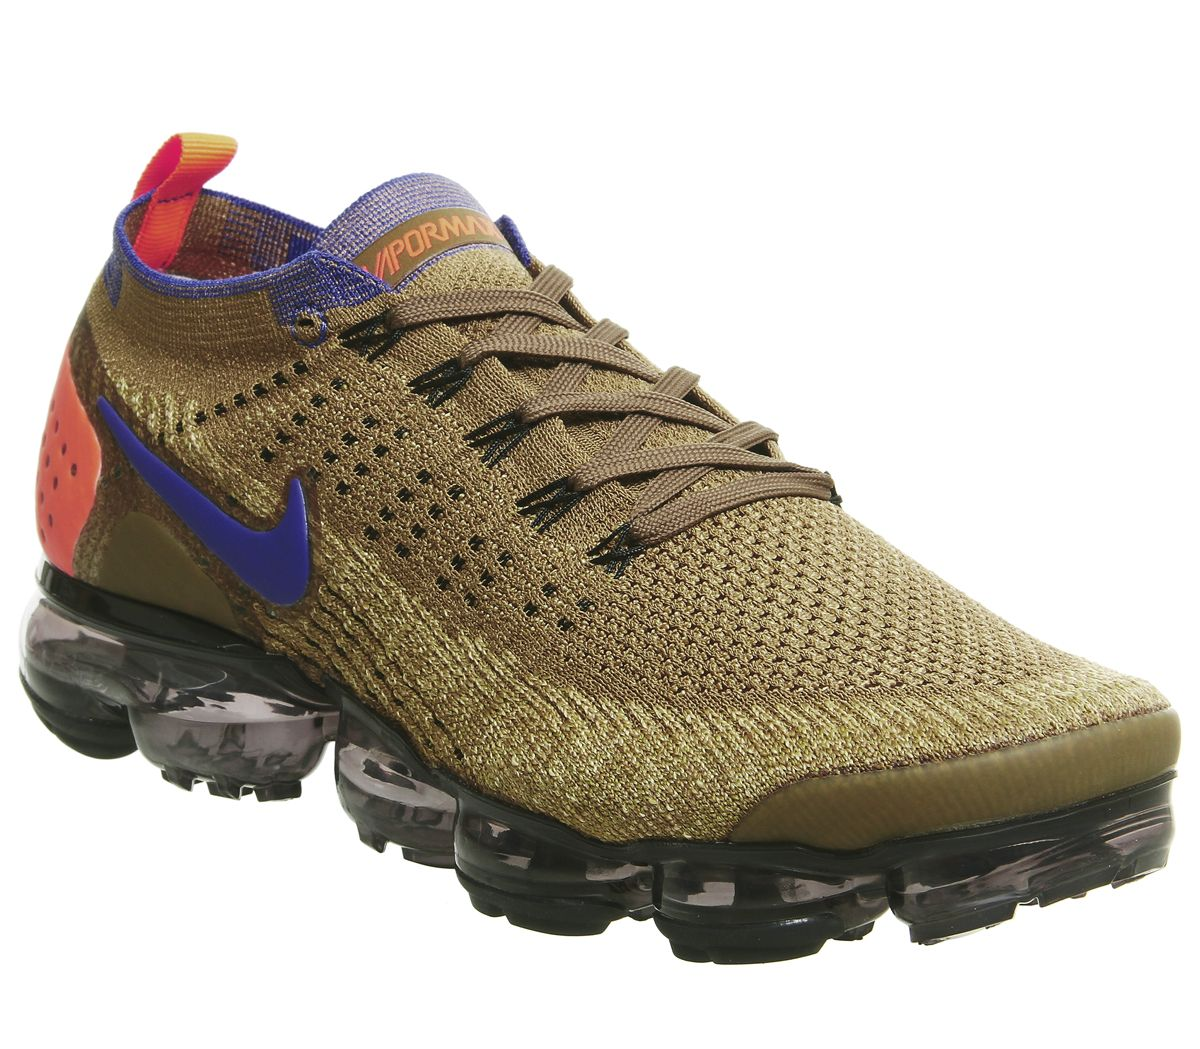 hot sale online b8e0b f3bd1 Nike Vapormax, Air Vapormax Flyknit 2 Trainers, Golden Beige Racer Blue  Club Gold Desert